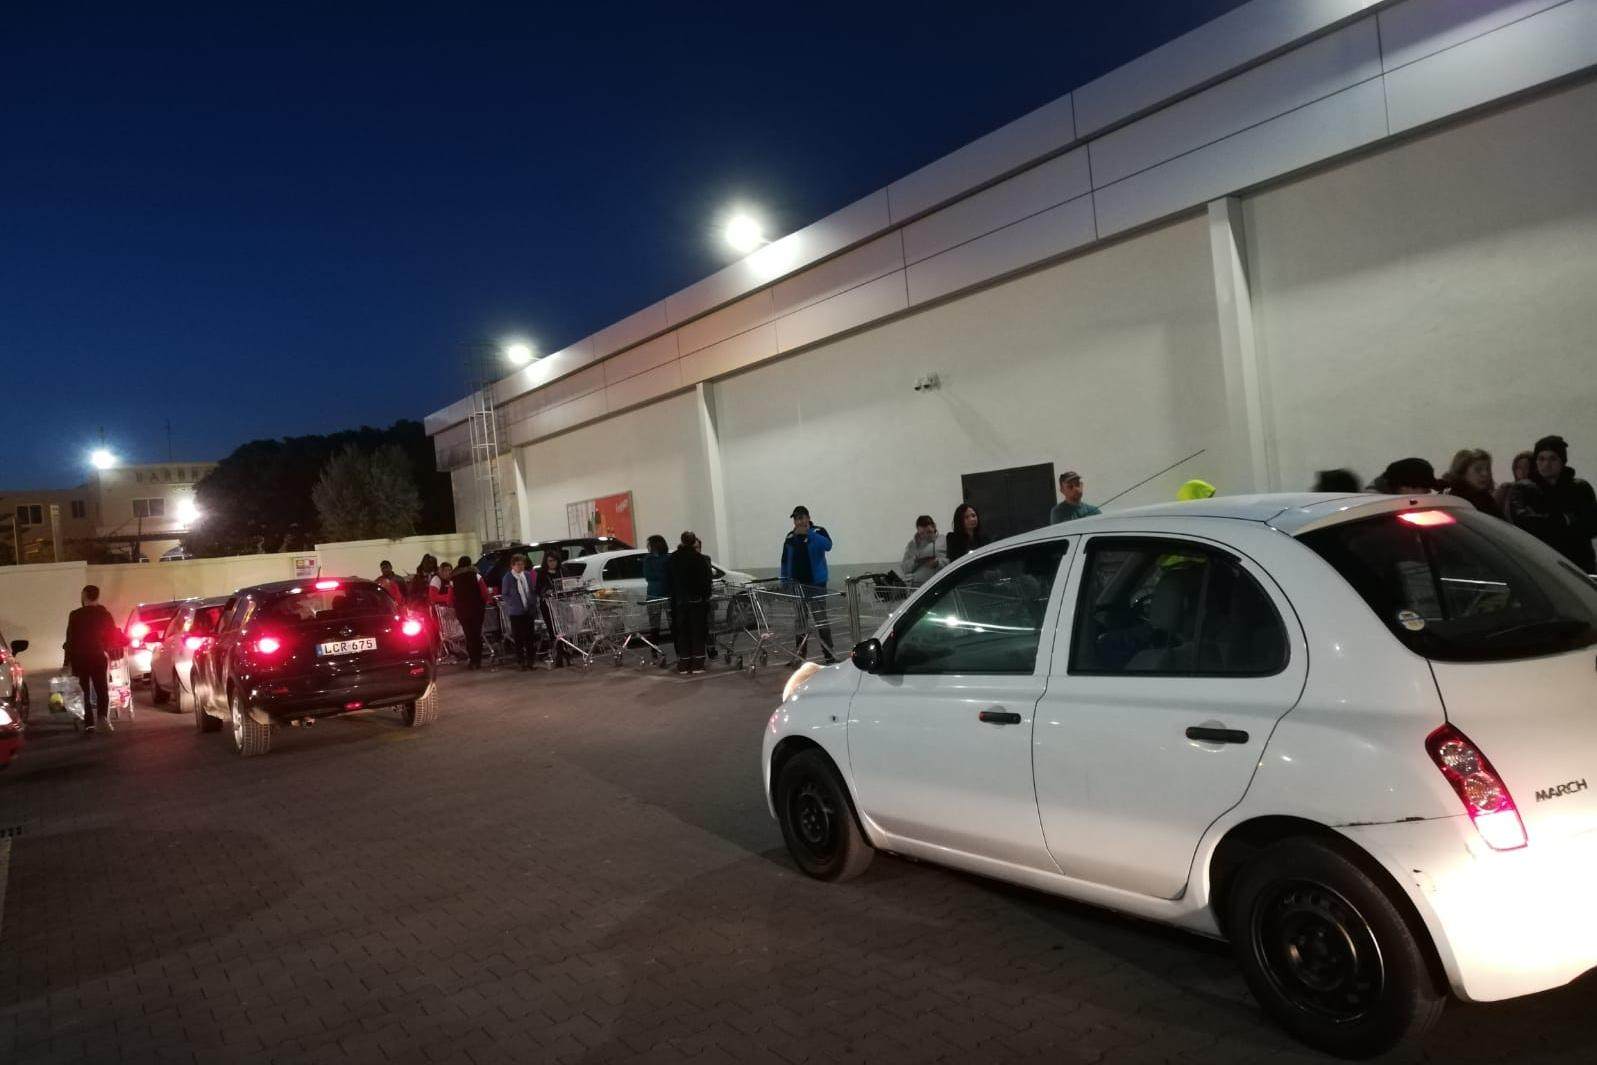 Shoppers waiting to enter a Lidl supermarket.